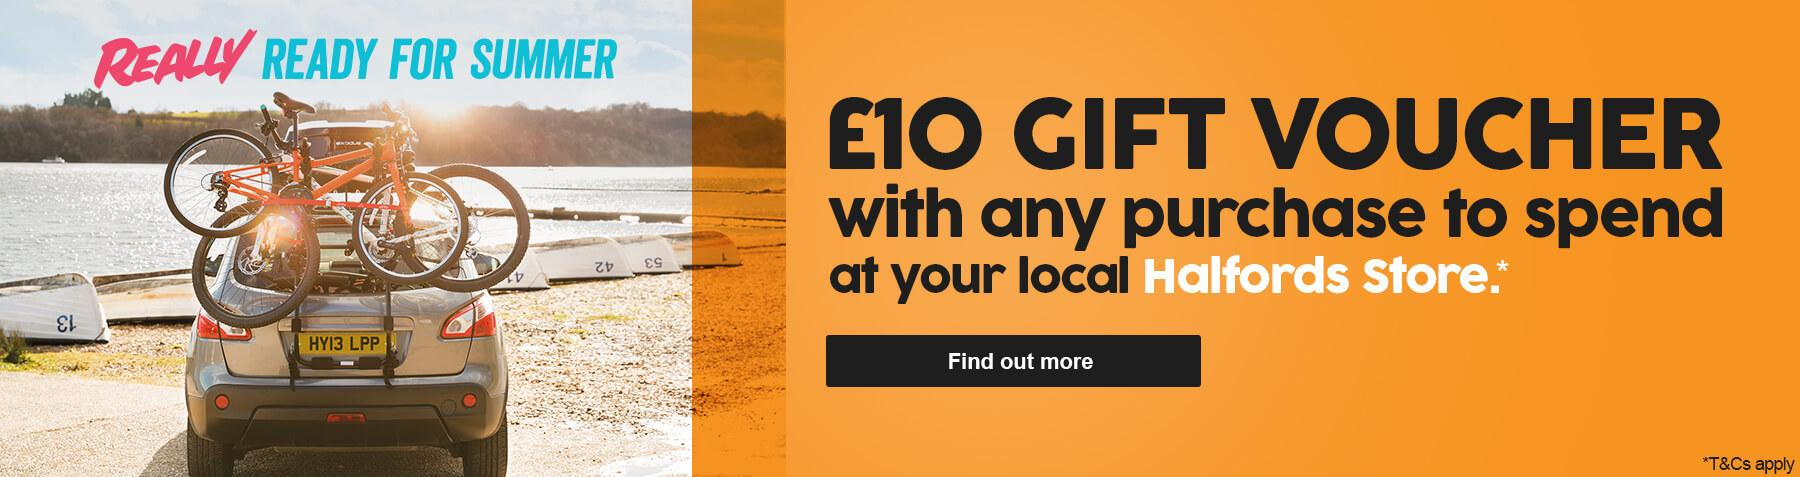 £10 Gift Voucher with any purchase to spend at your local Halfords Store.